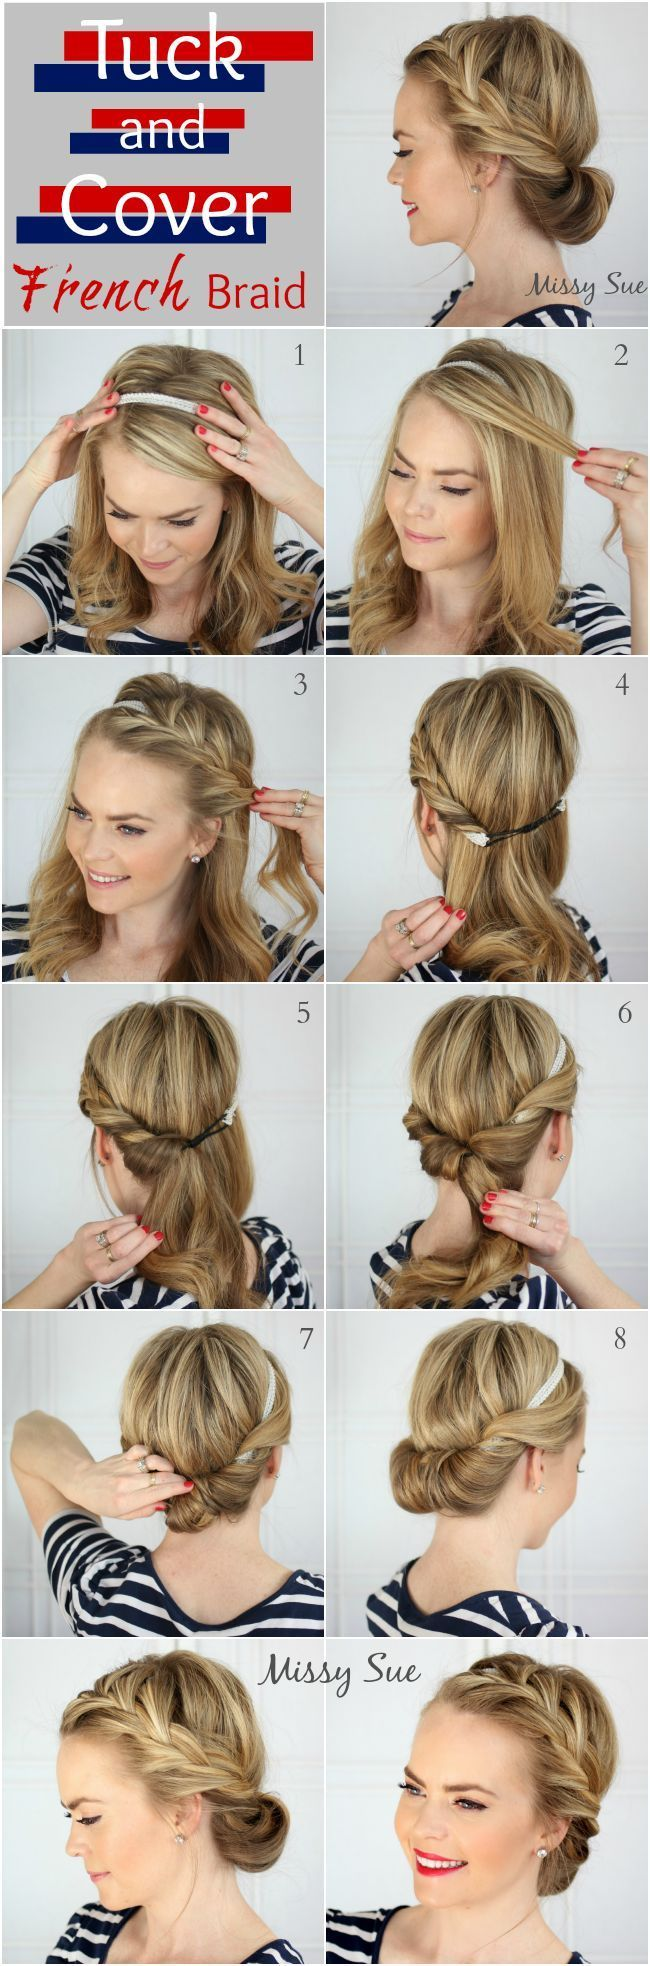 easy hairstyles for bangs to get them out of your face french